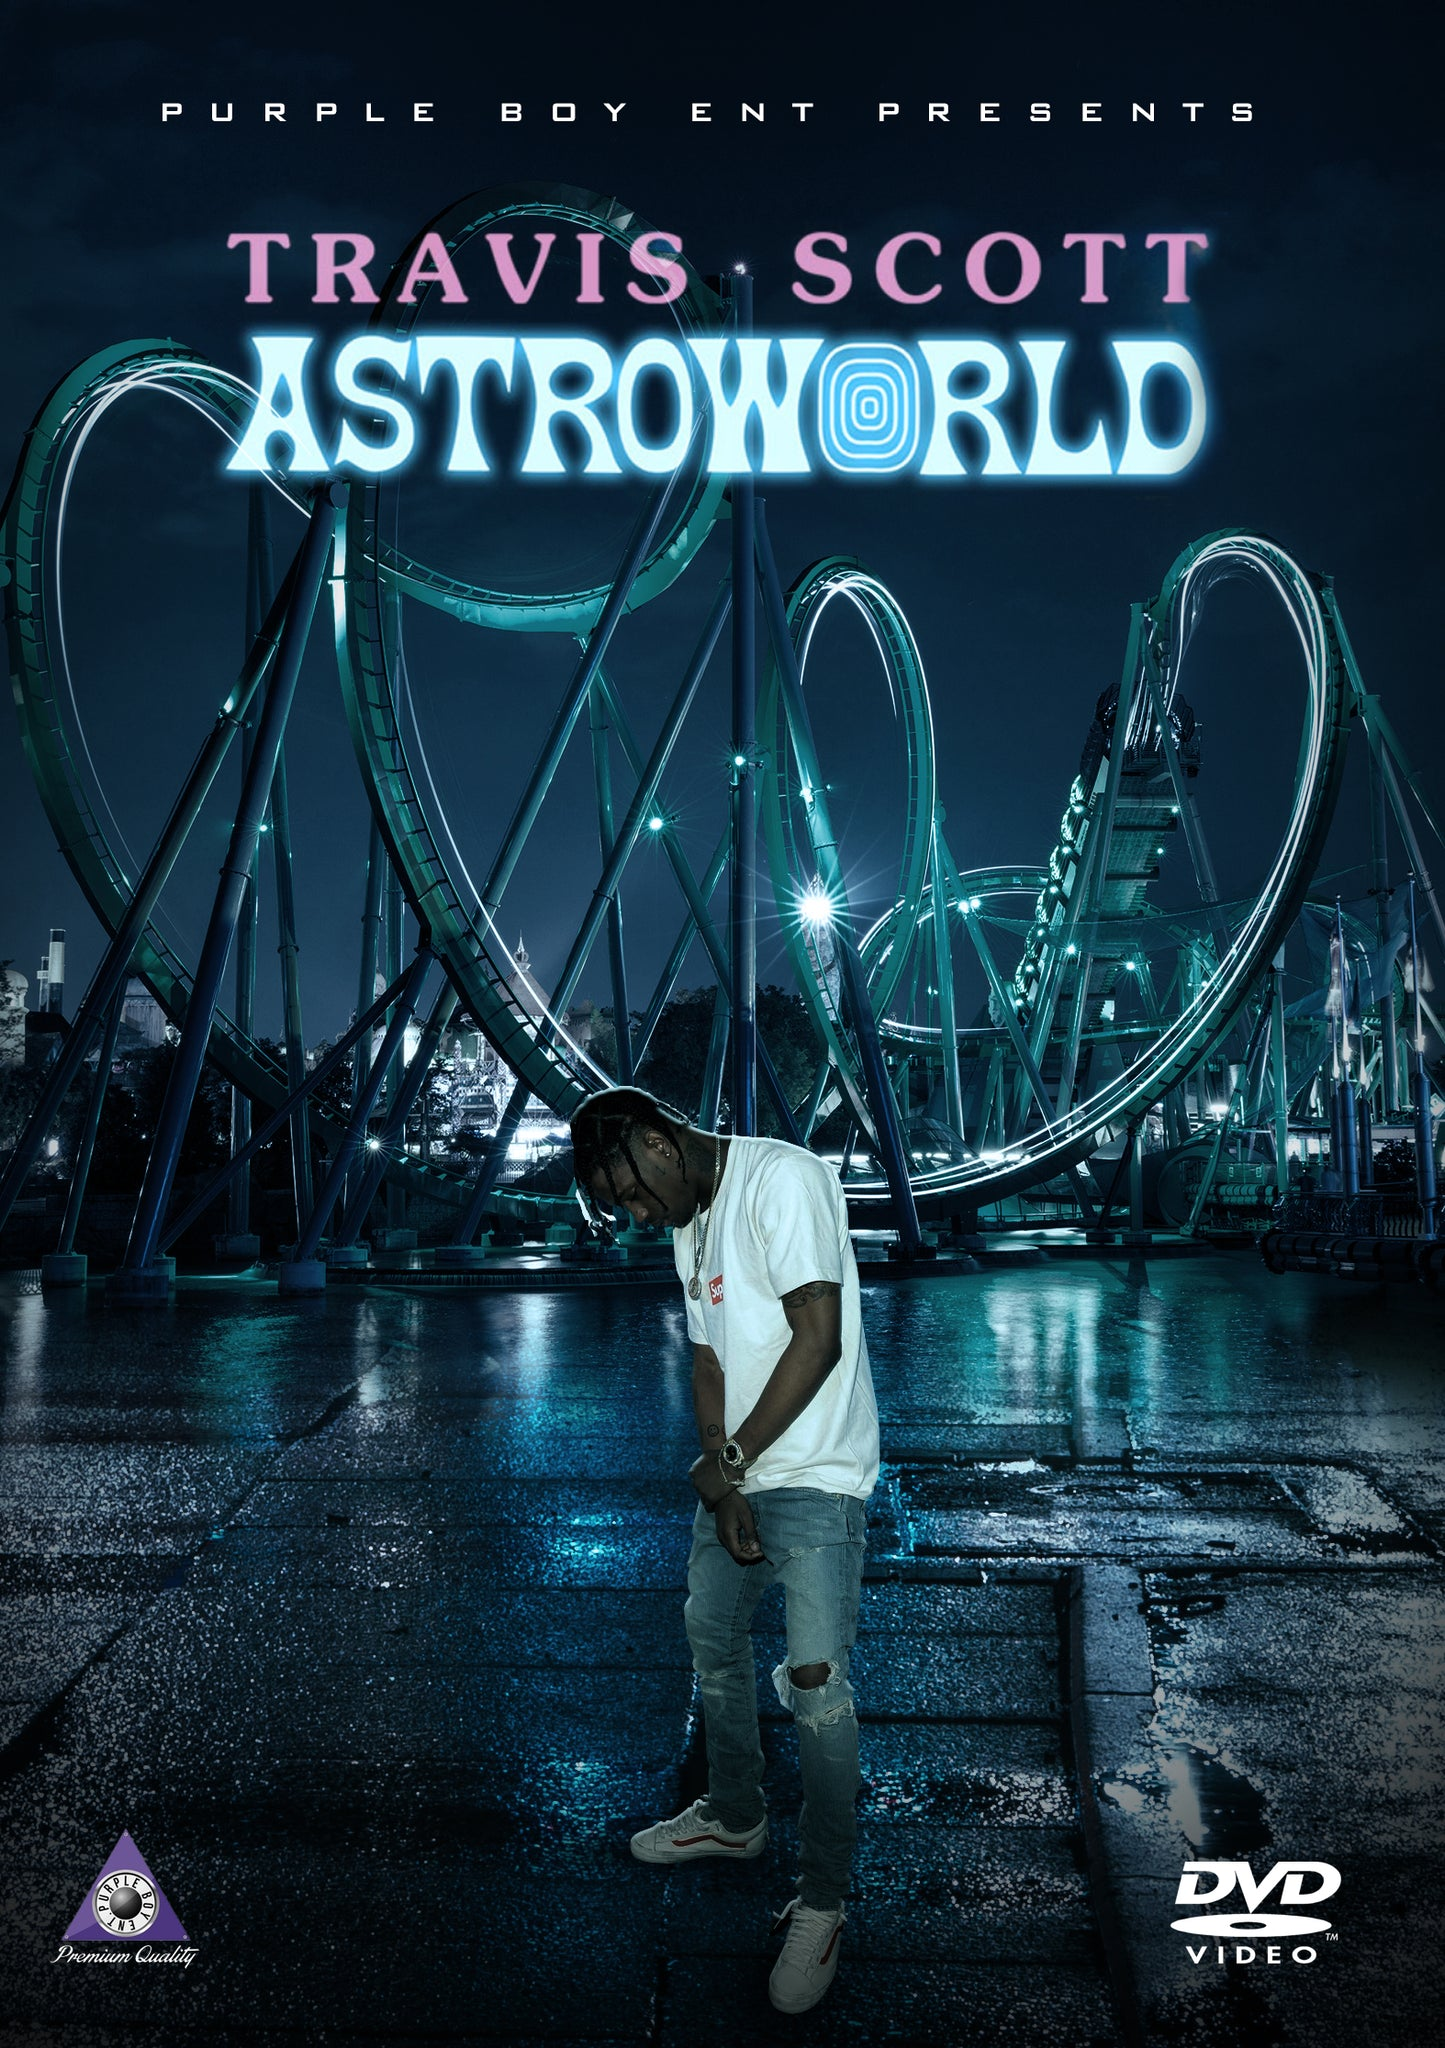 093af9c3698b Load image into Gallery viewer, Astroworld | Travis Scott ...